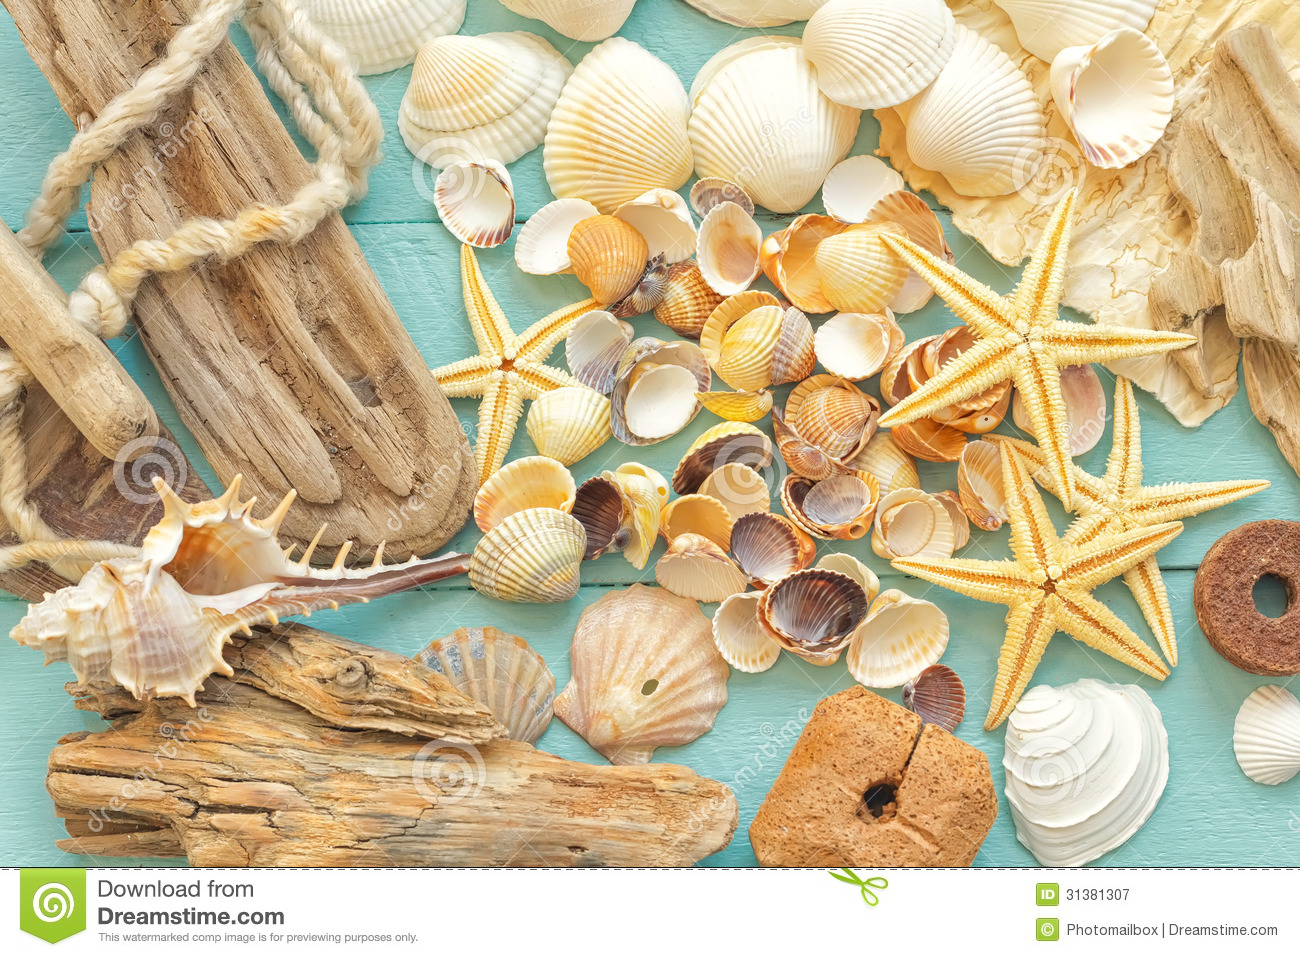 Sea Shells Royalty Free Stock Photography - Image: 31381307